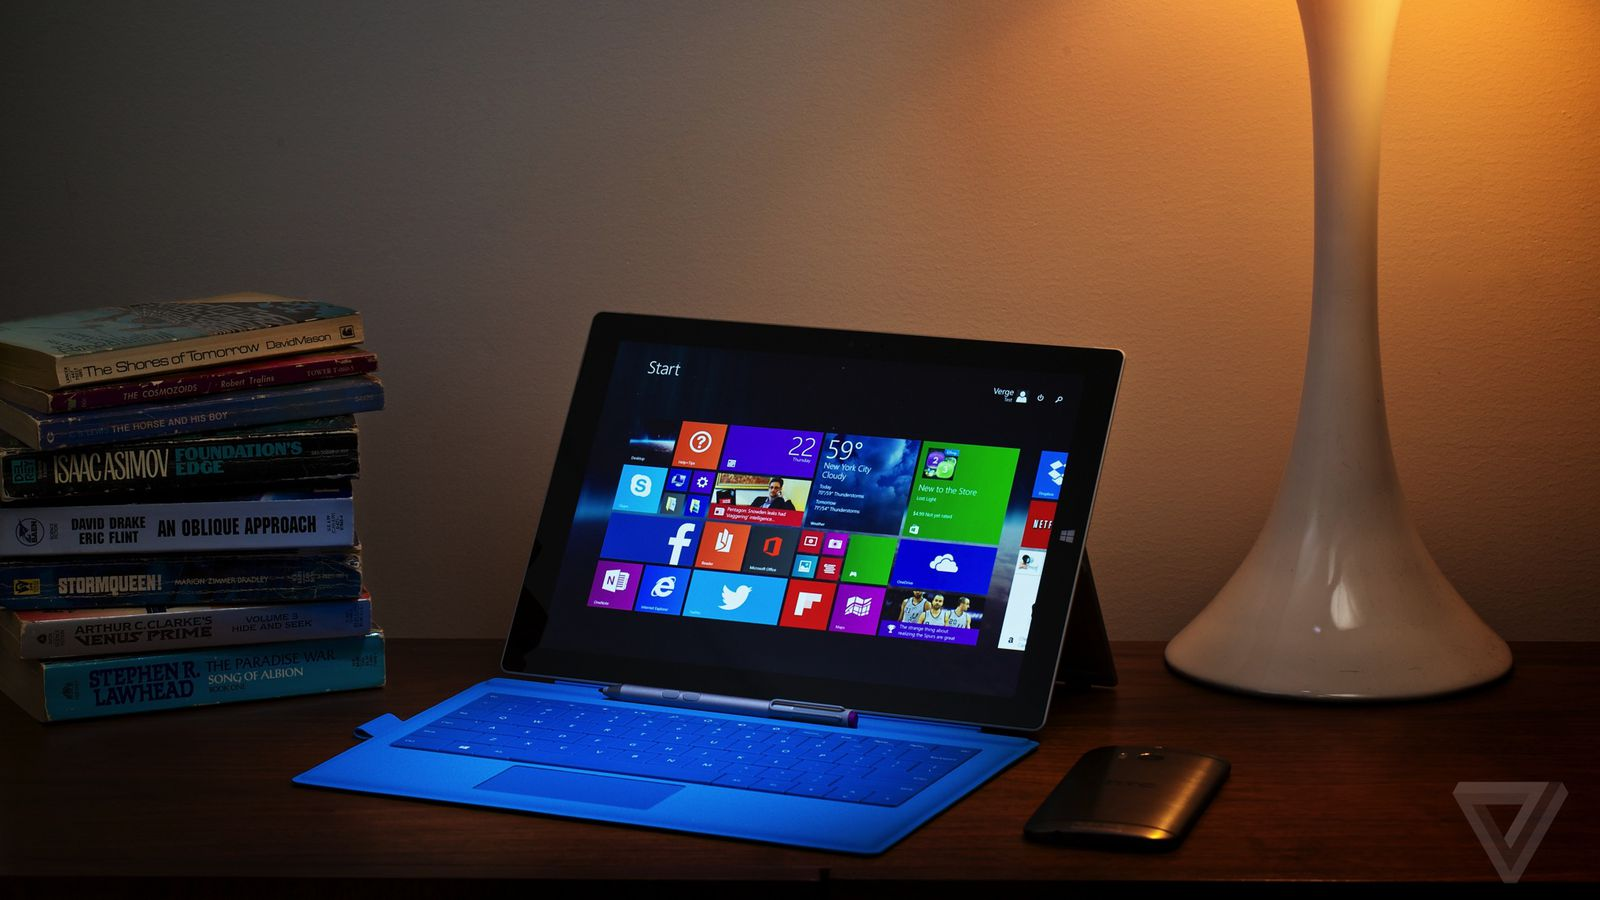 The best apps for your new Windows PC | The Verge